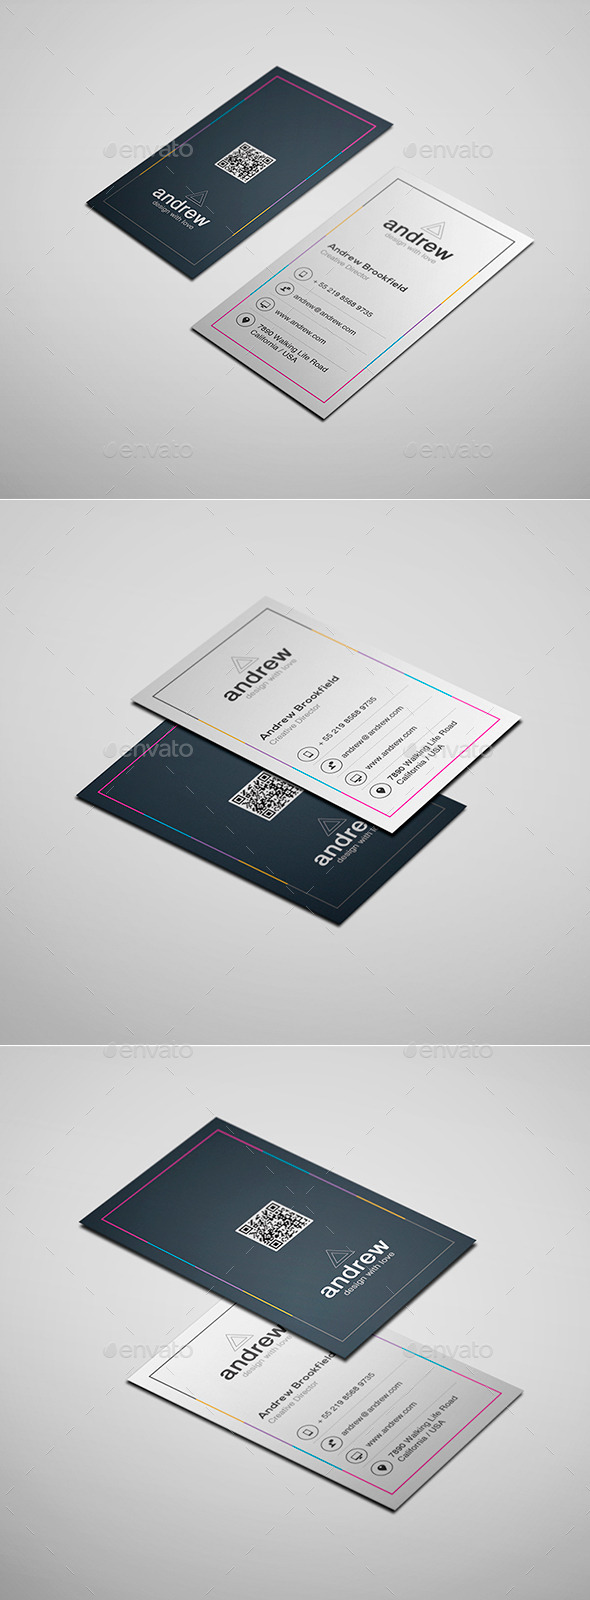 GraphicRiver Business Card Vol 26 11628685